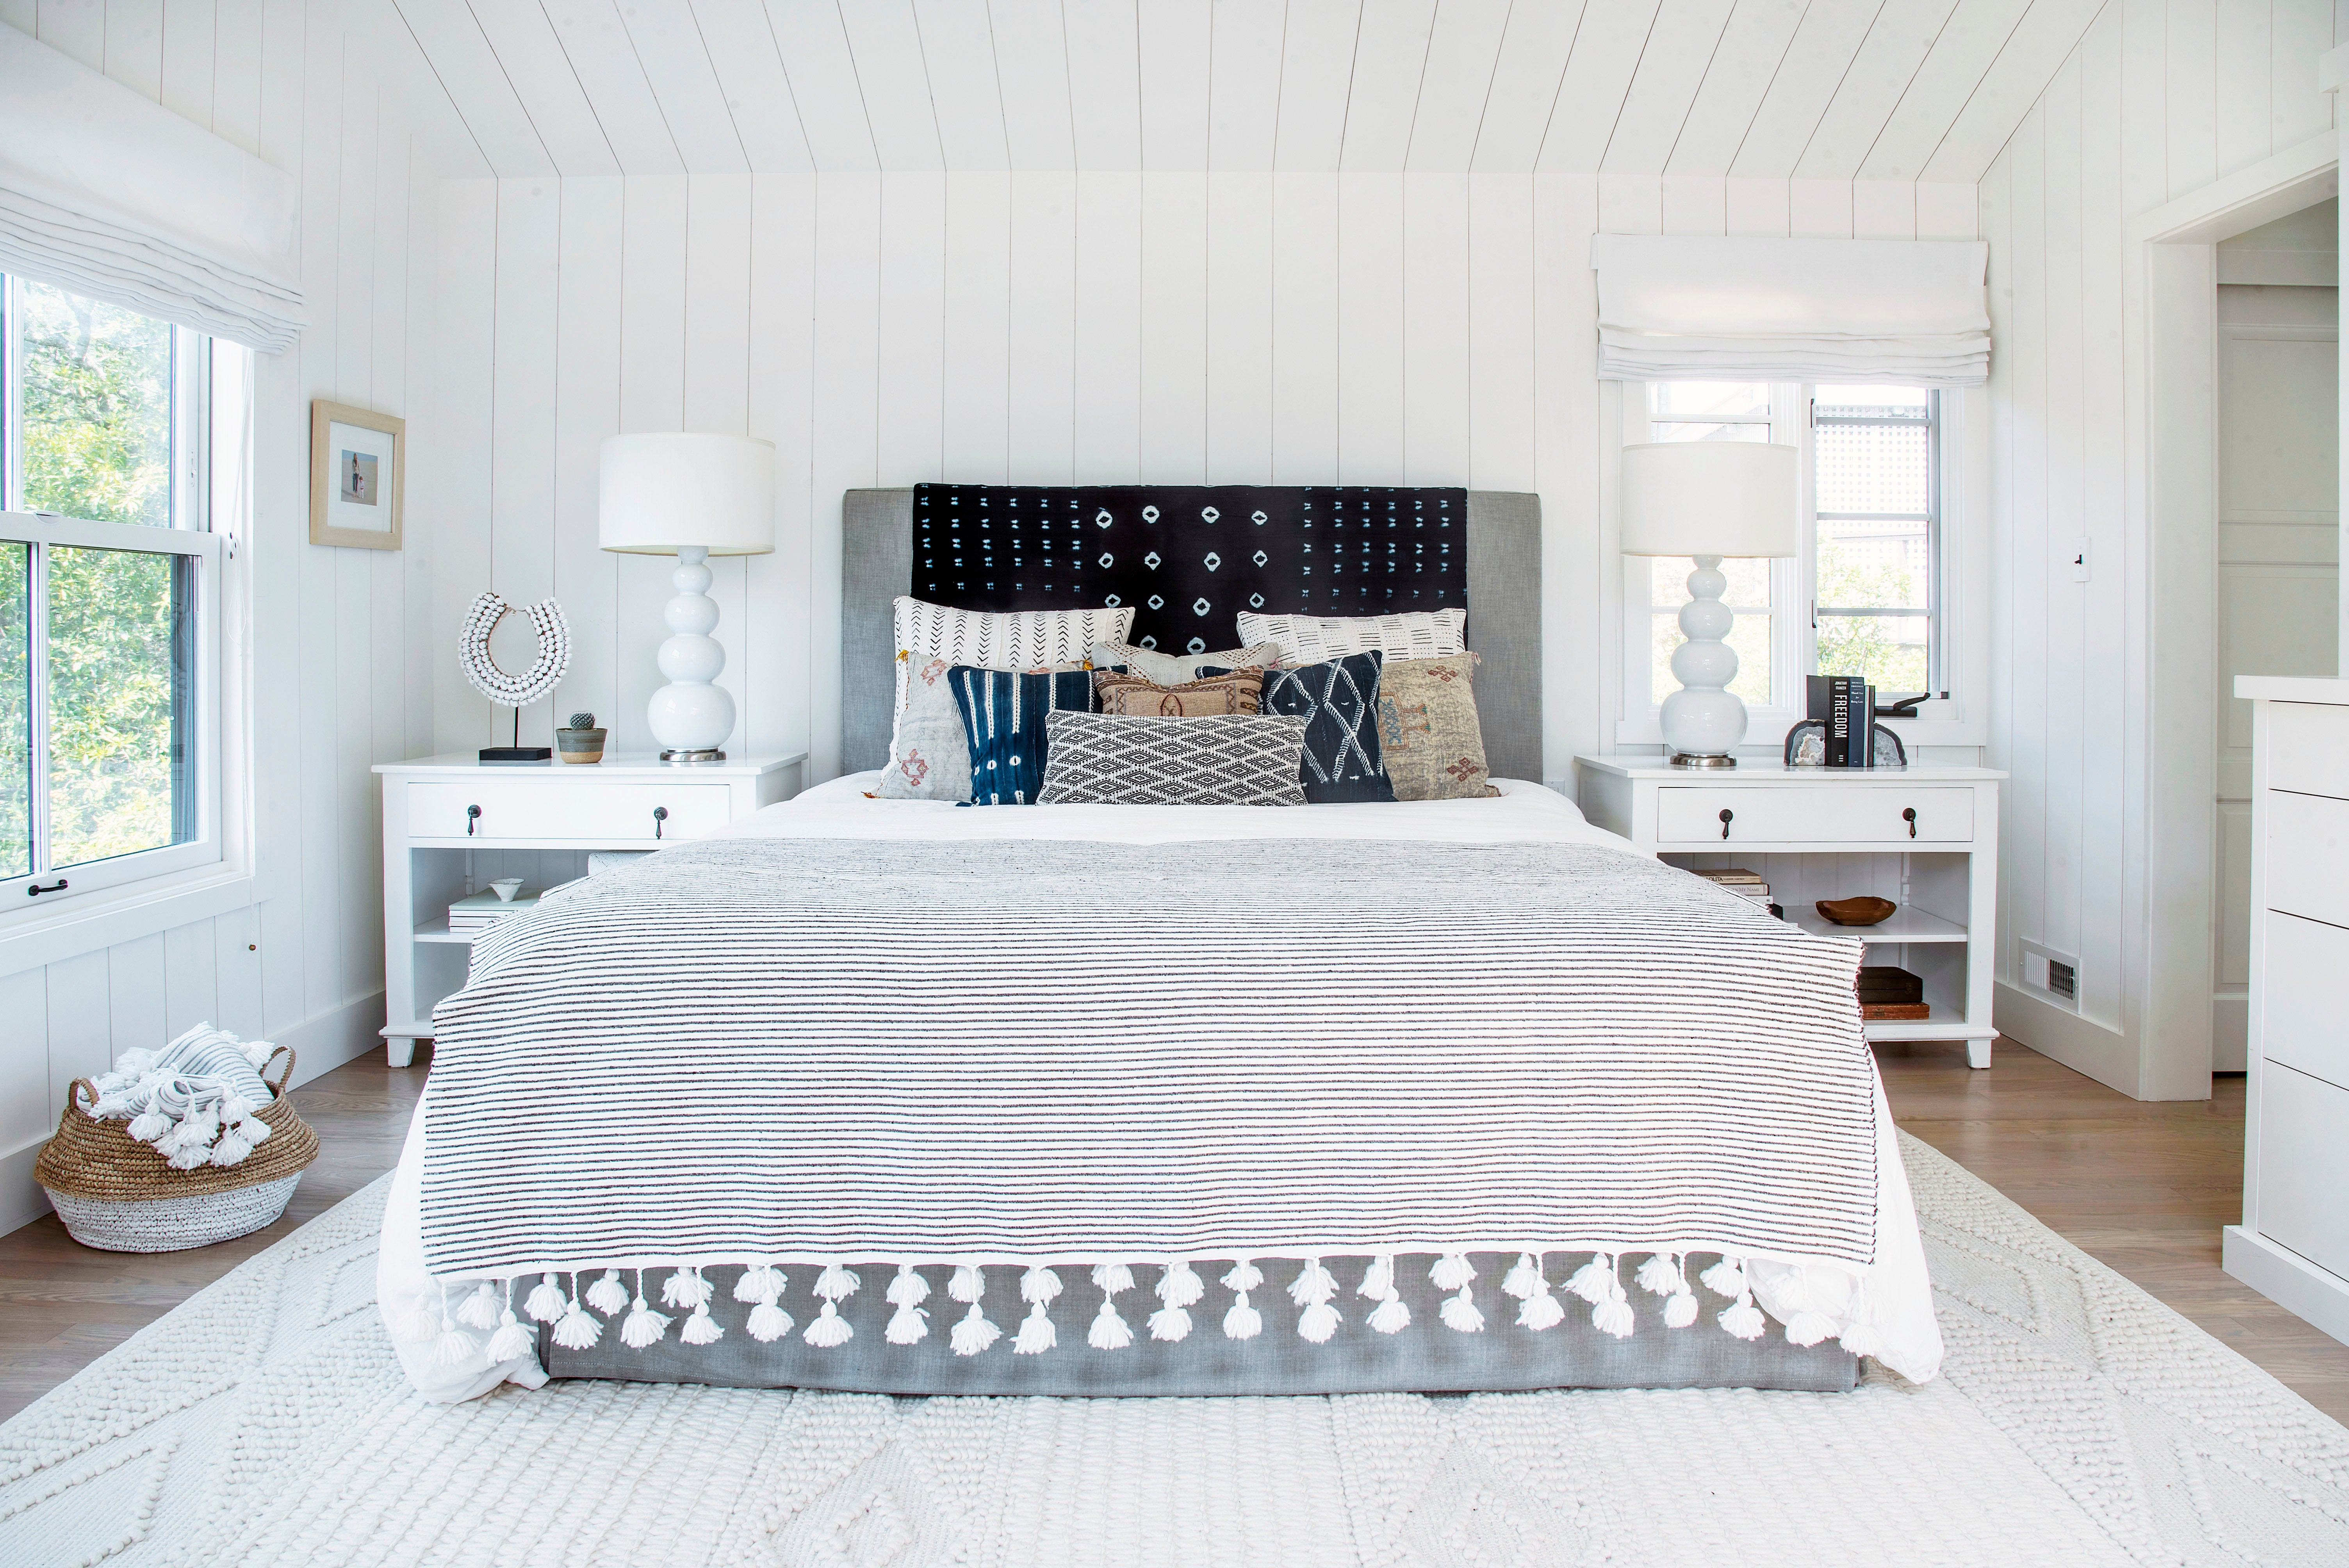 bed with striped blanket